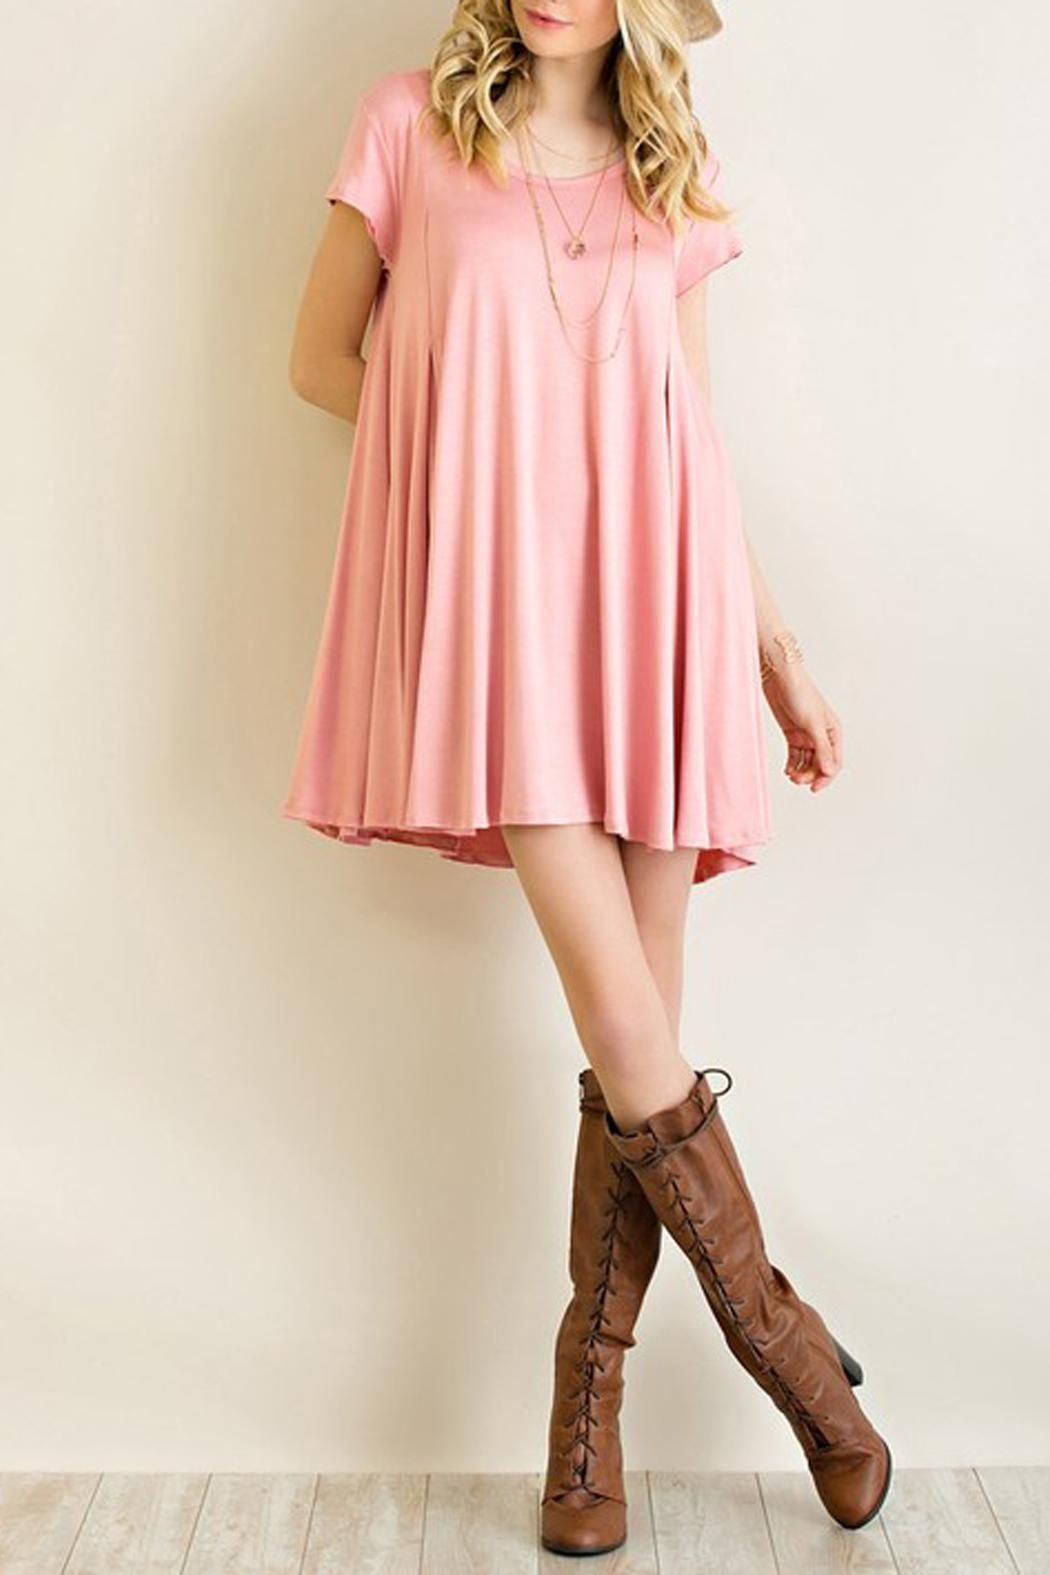 ccd54c50862 This solid color t-shirt knit dress is a simple but classic chic dress that  can go well with simple layered necklace and long boots.